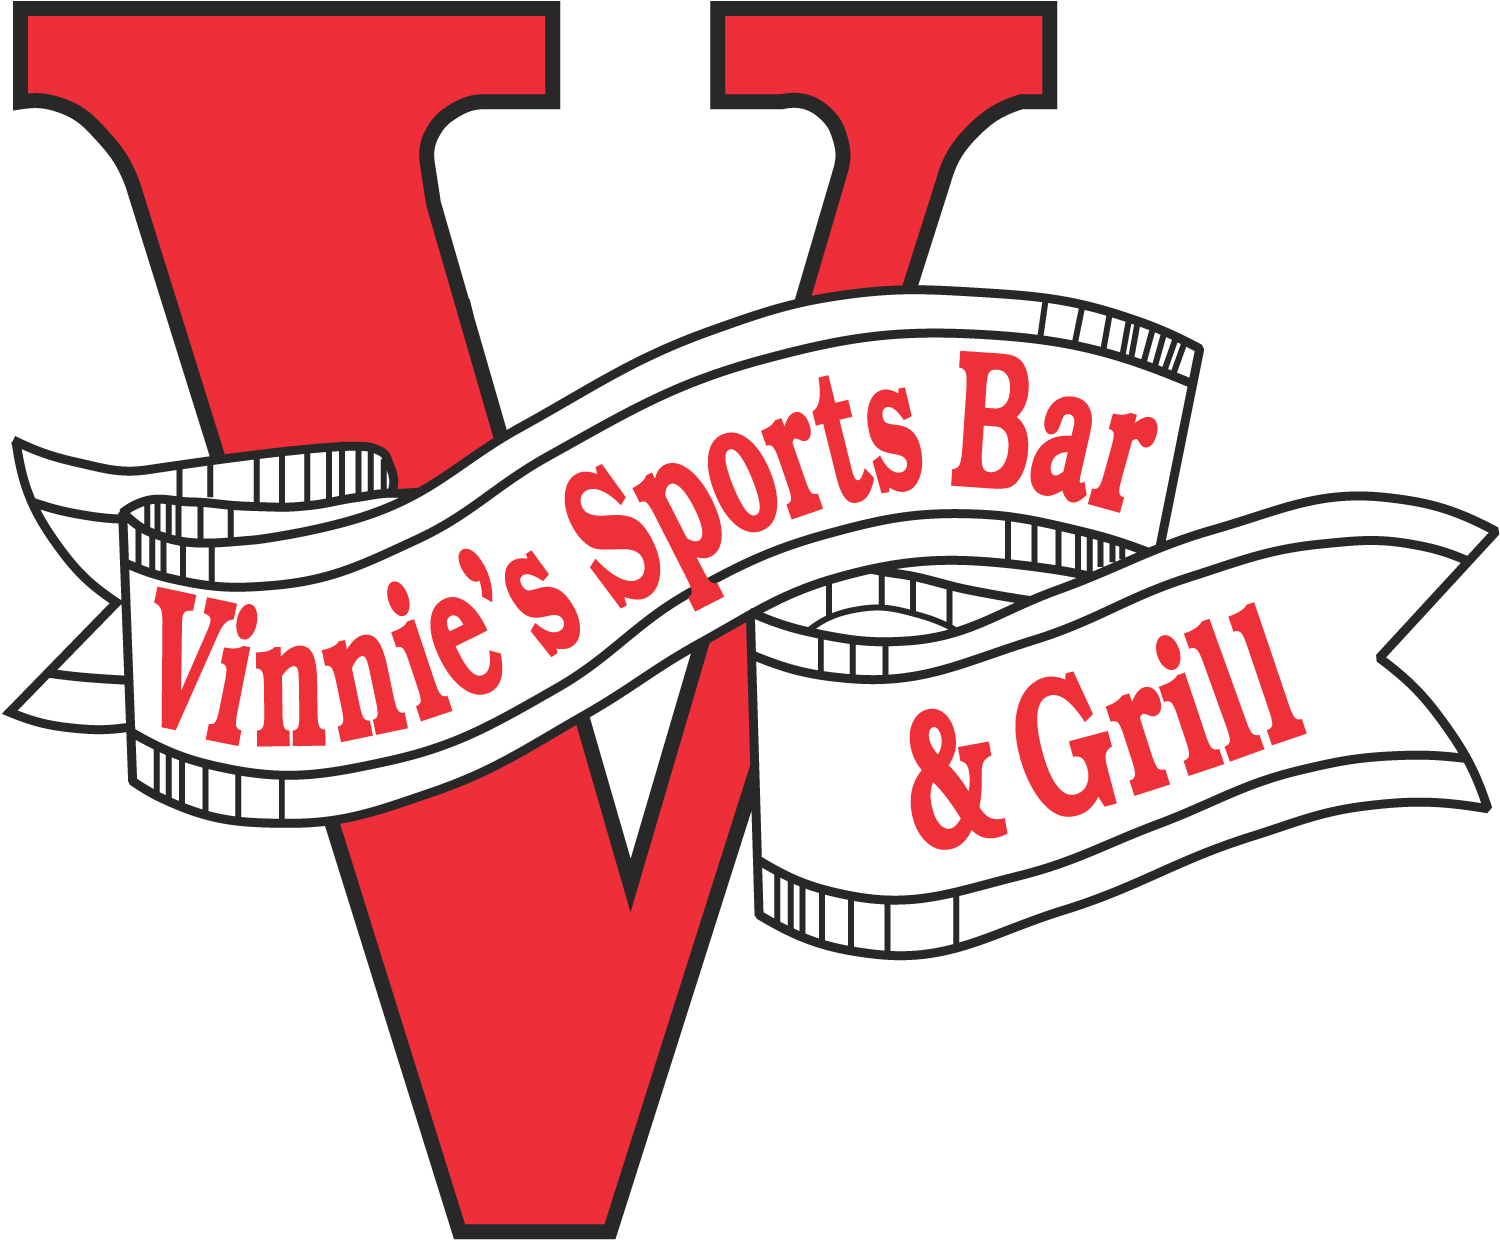 Vinnie's Sports Bar & Grill